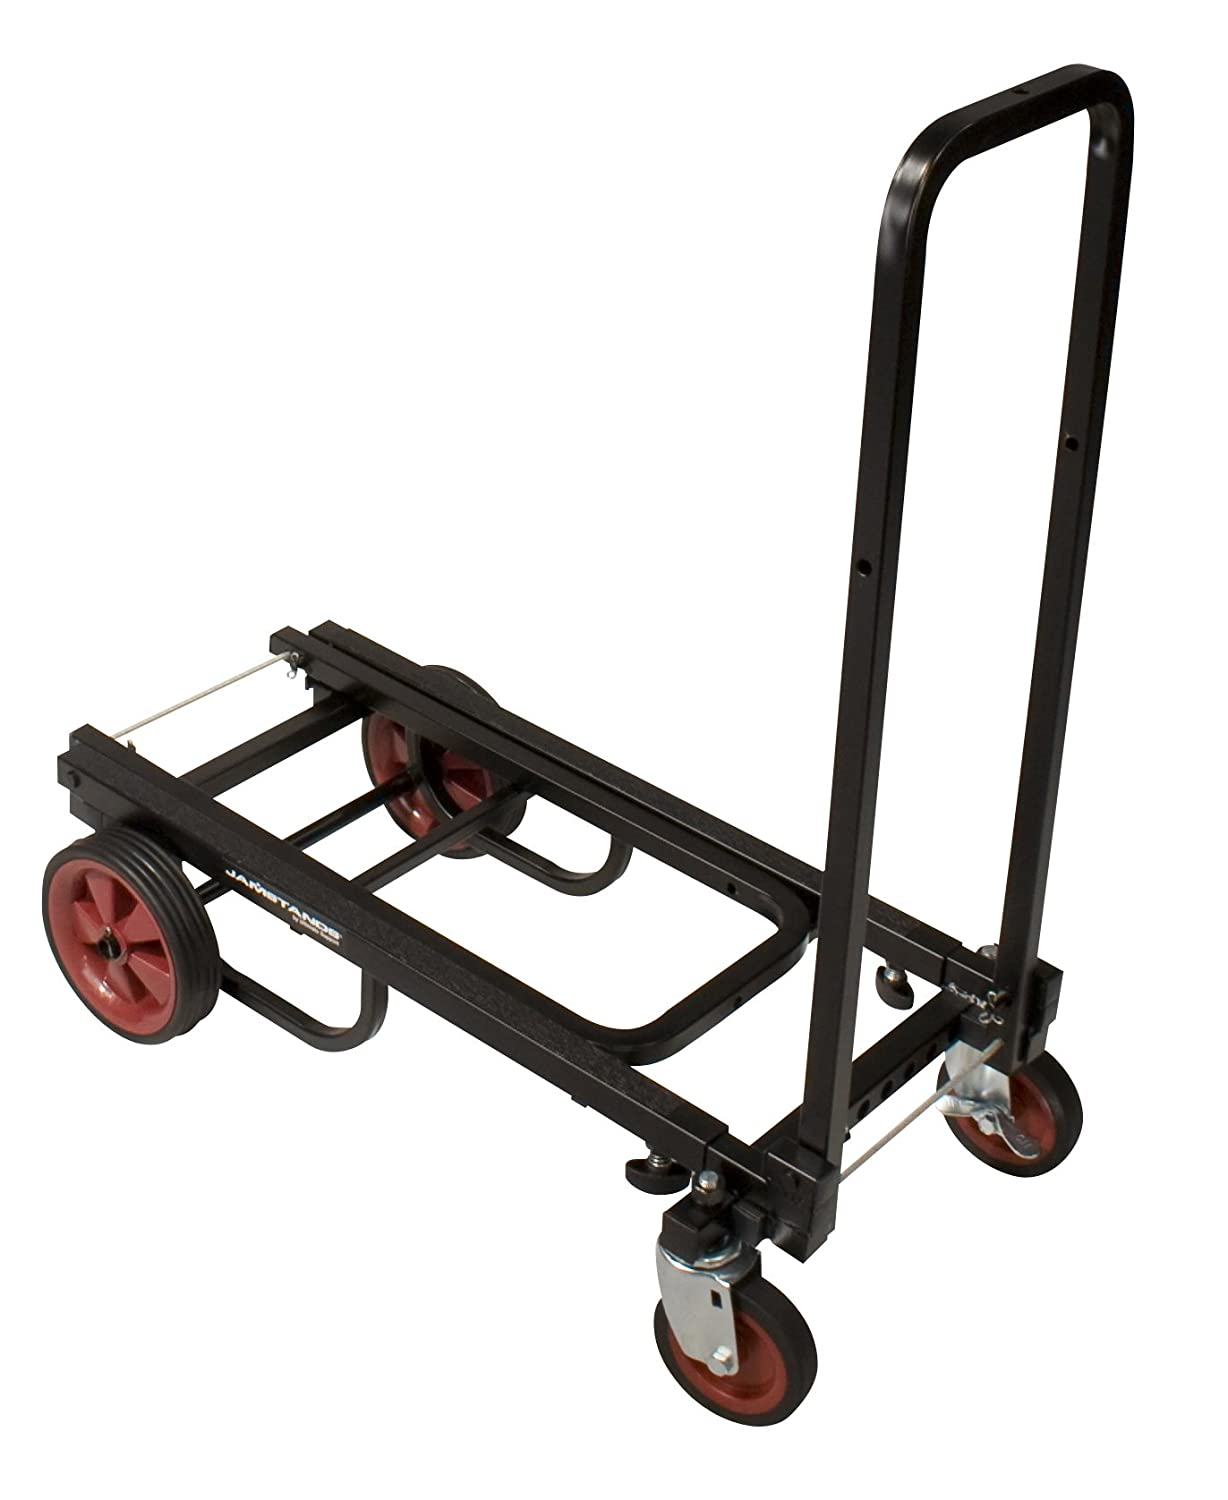 Jamstands JS-KC80 - Carro de transporte pequeño Ultimate Suport JSKC80